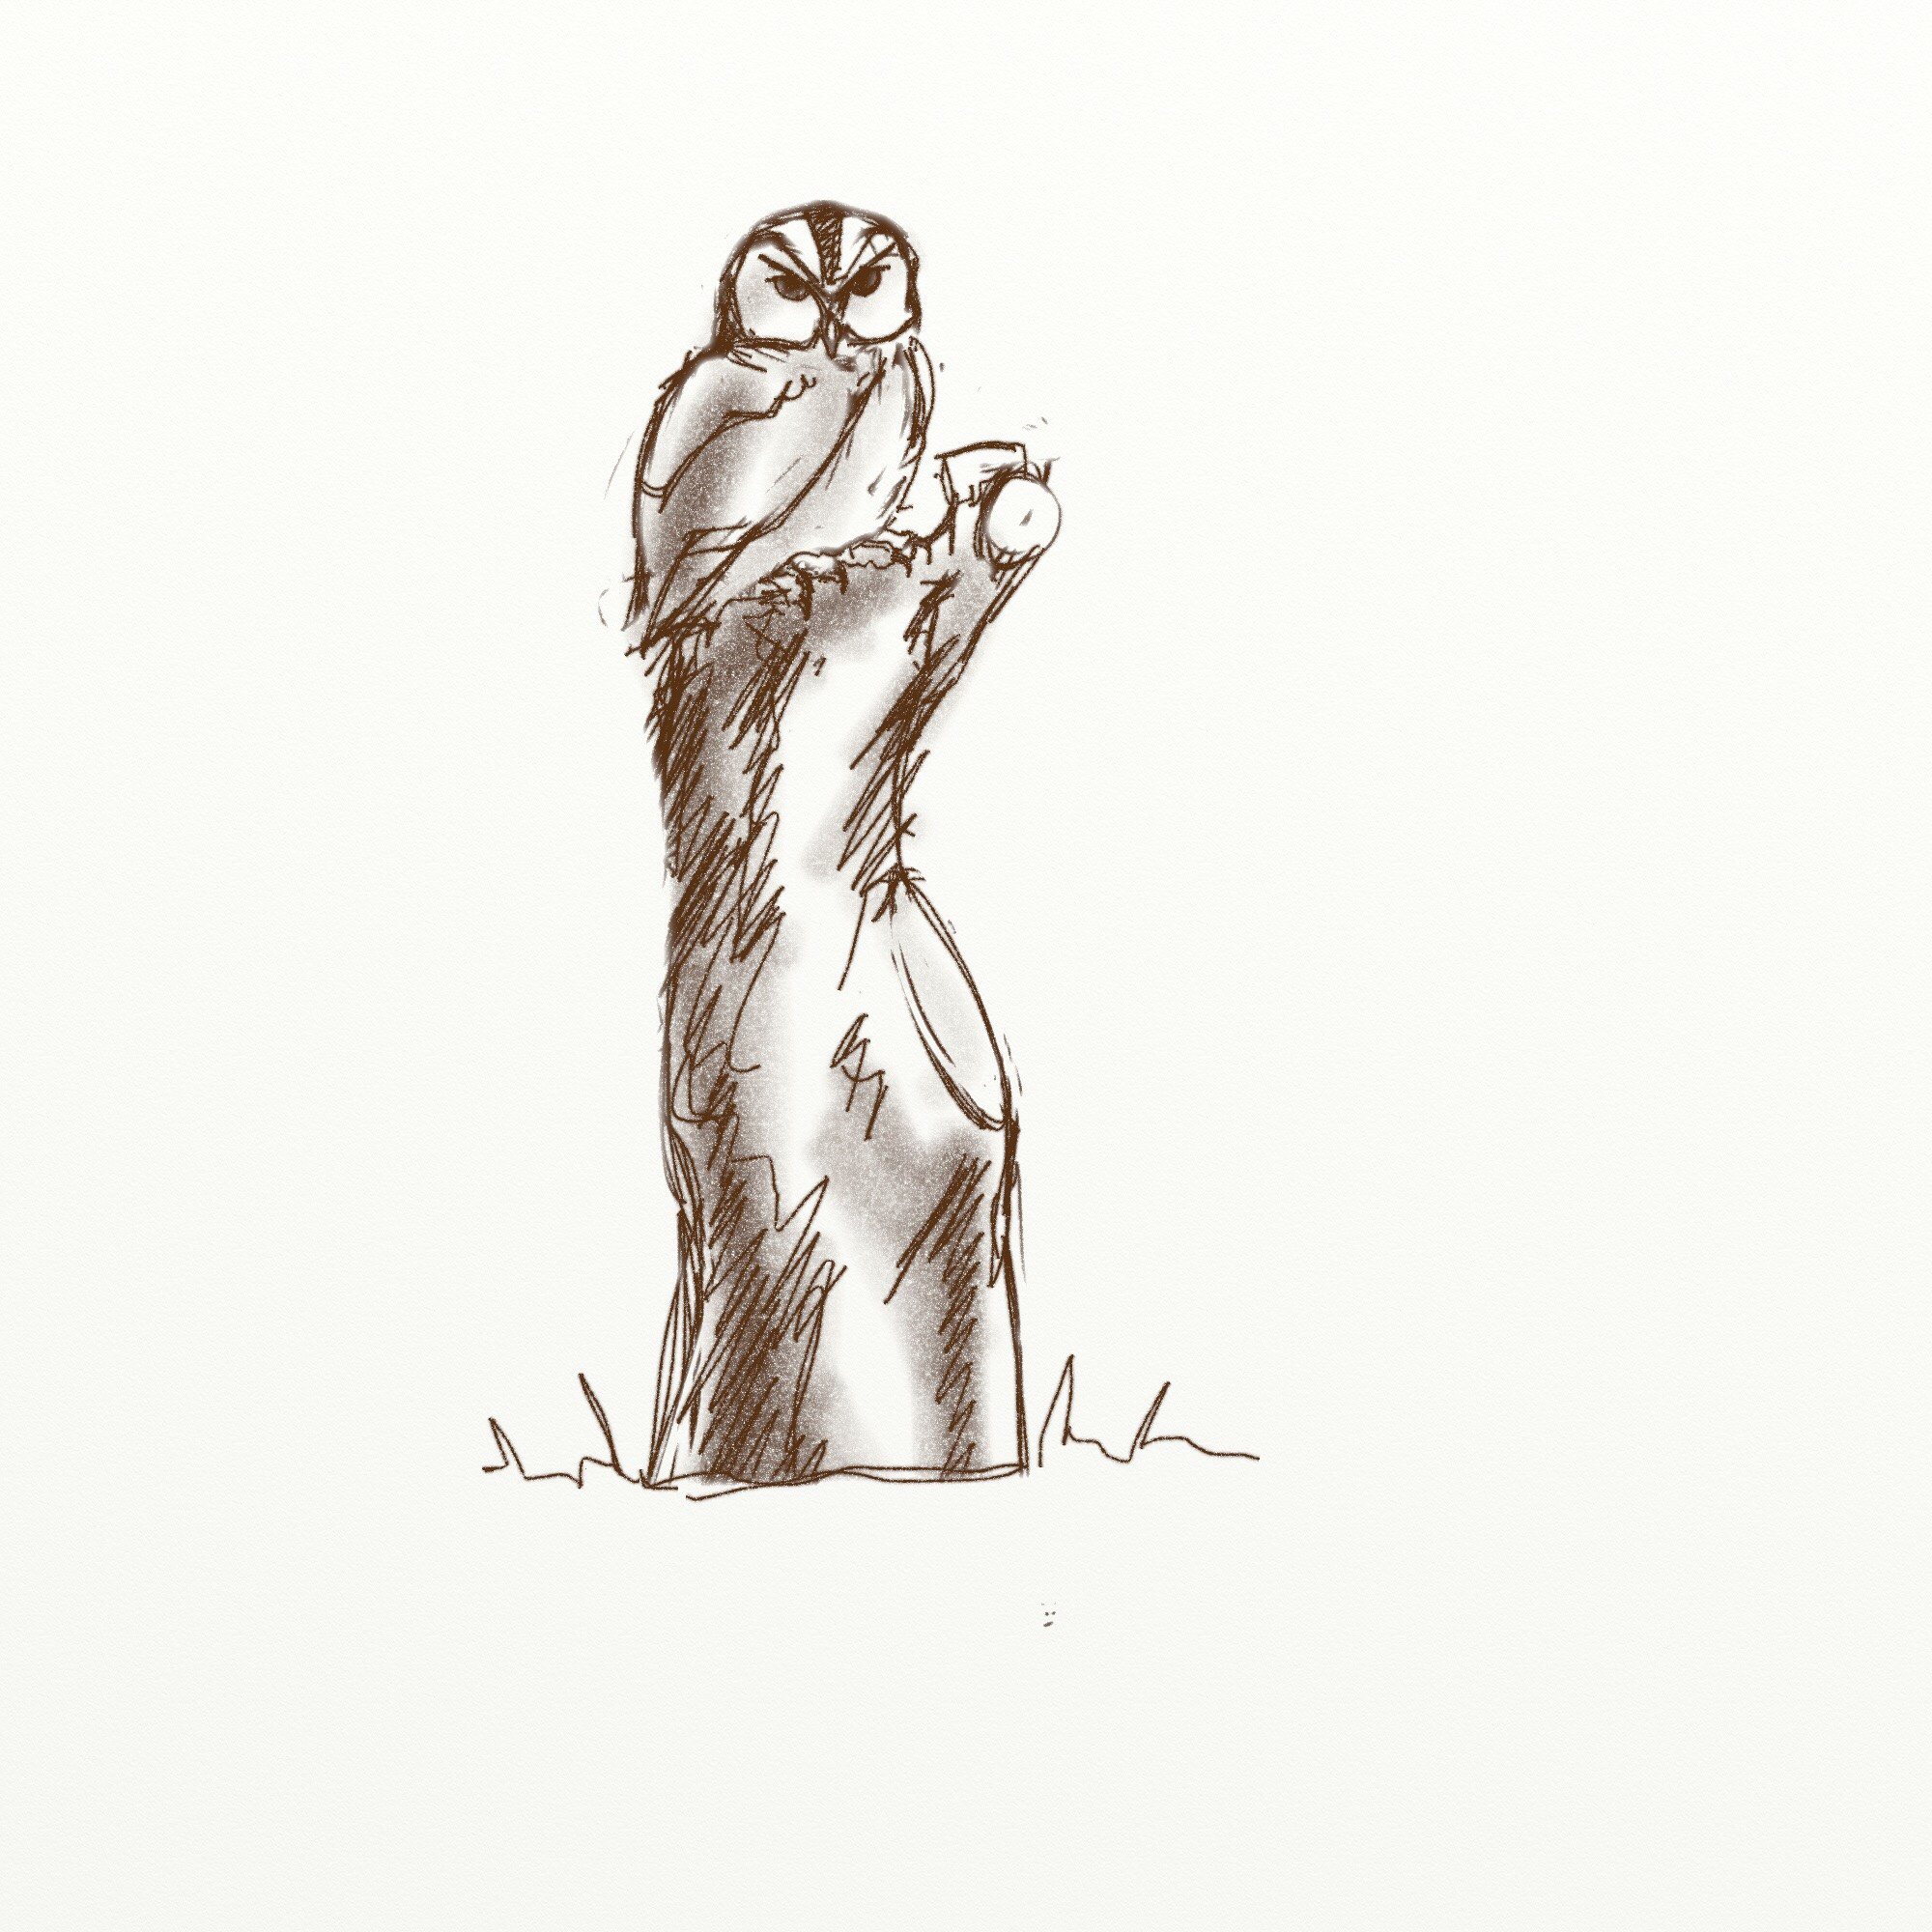 Original concept sketch of Ruby the Owl from meadow park woodland sculpture trails by simon o'rourke